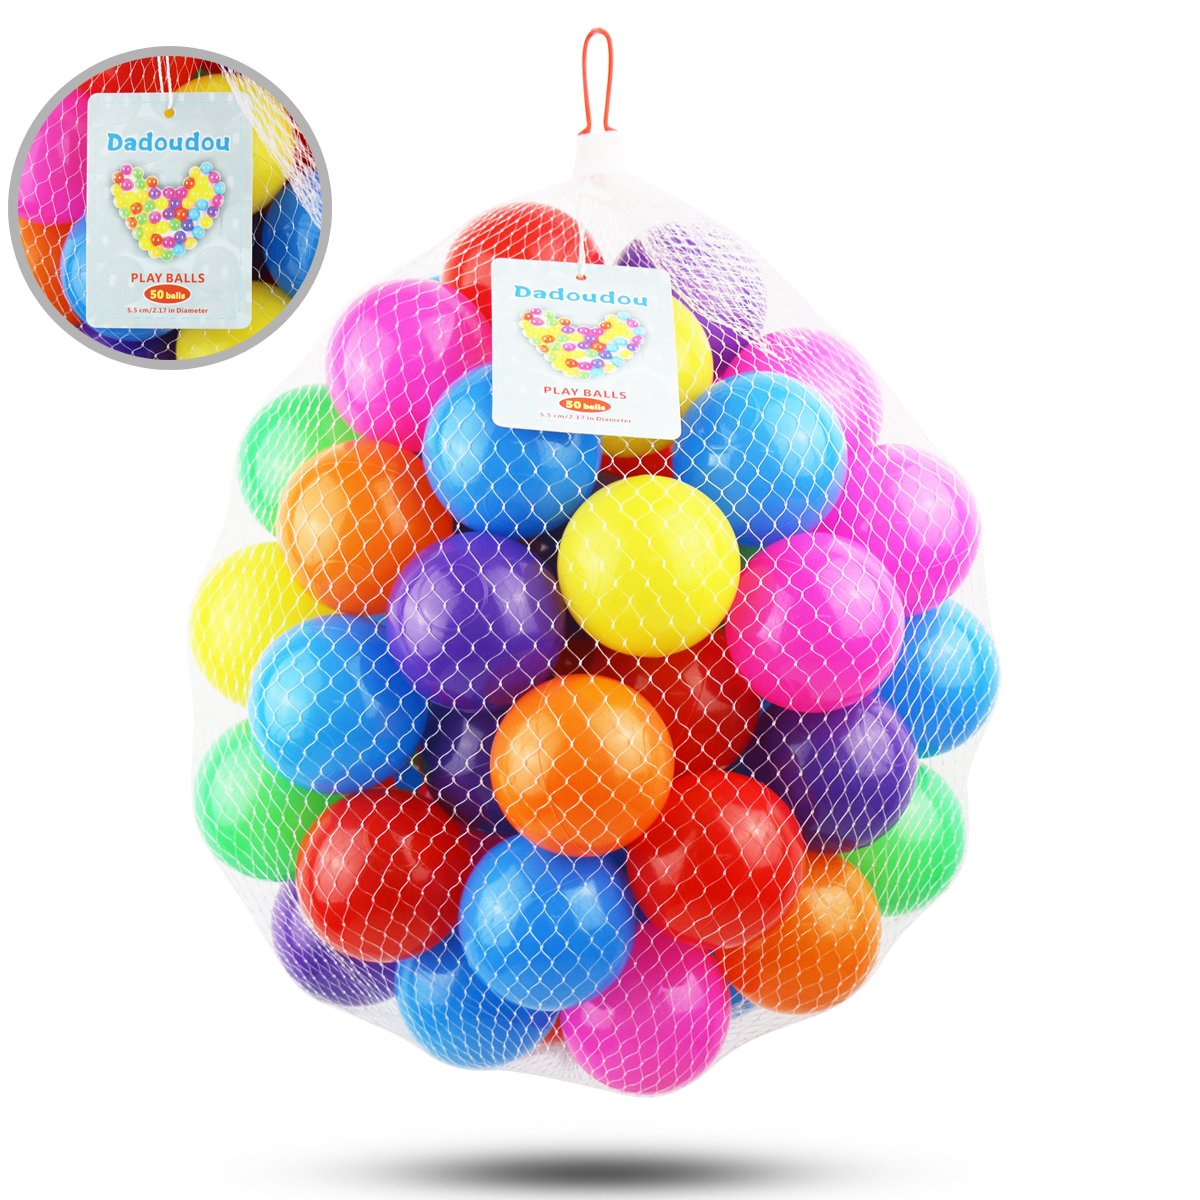 Pit Balls, Dadoudou Colorful Fun Phthalate Free BPA Free Crush Proof Balls Soft Plastic Air-Filled Ocean Ball Playballs for Baby Kids Tent Swim Toys Ball Pack of 50 by Dadoudou (Image #7)